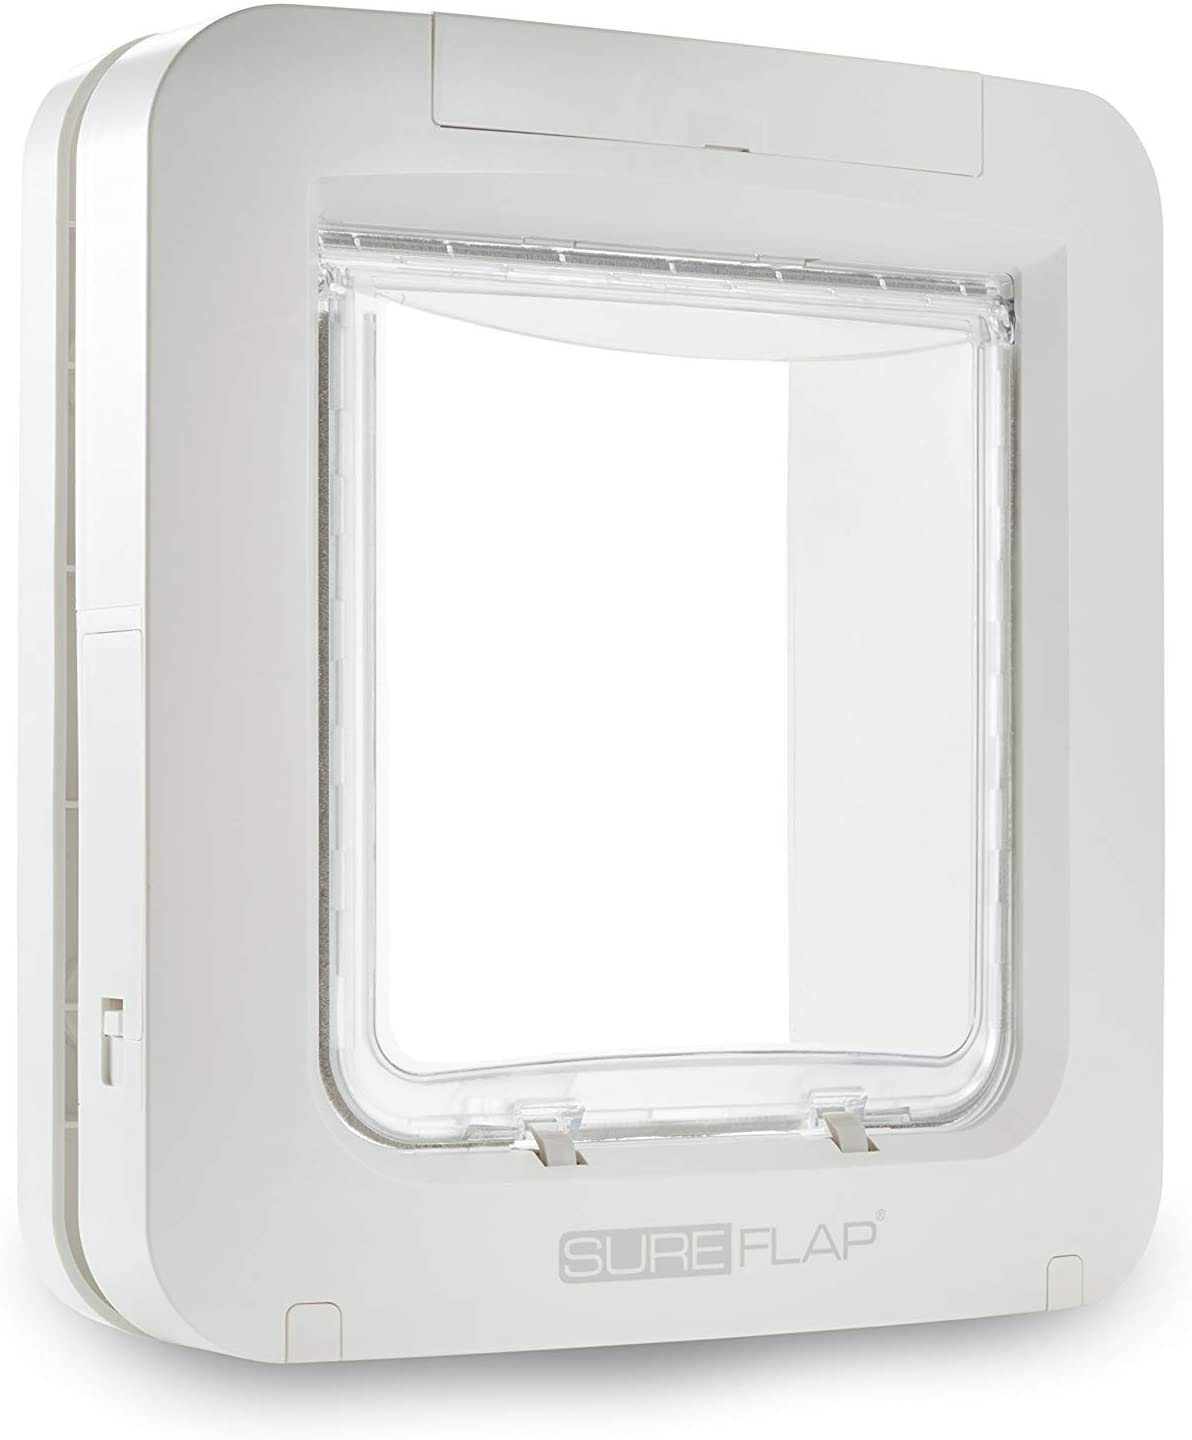 Chatiere sureflap grand chat